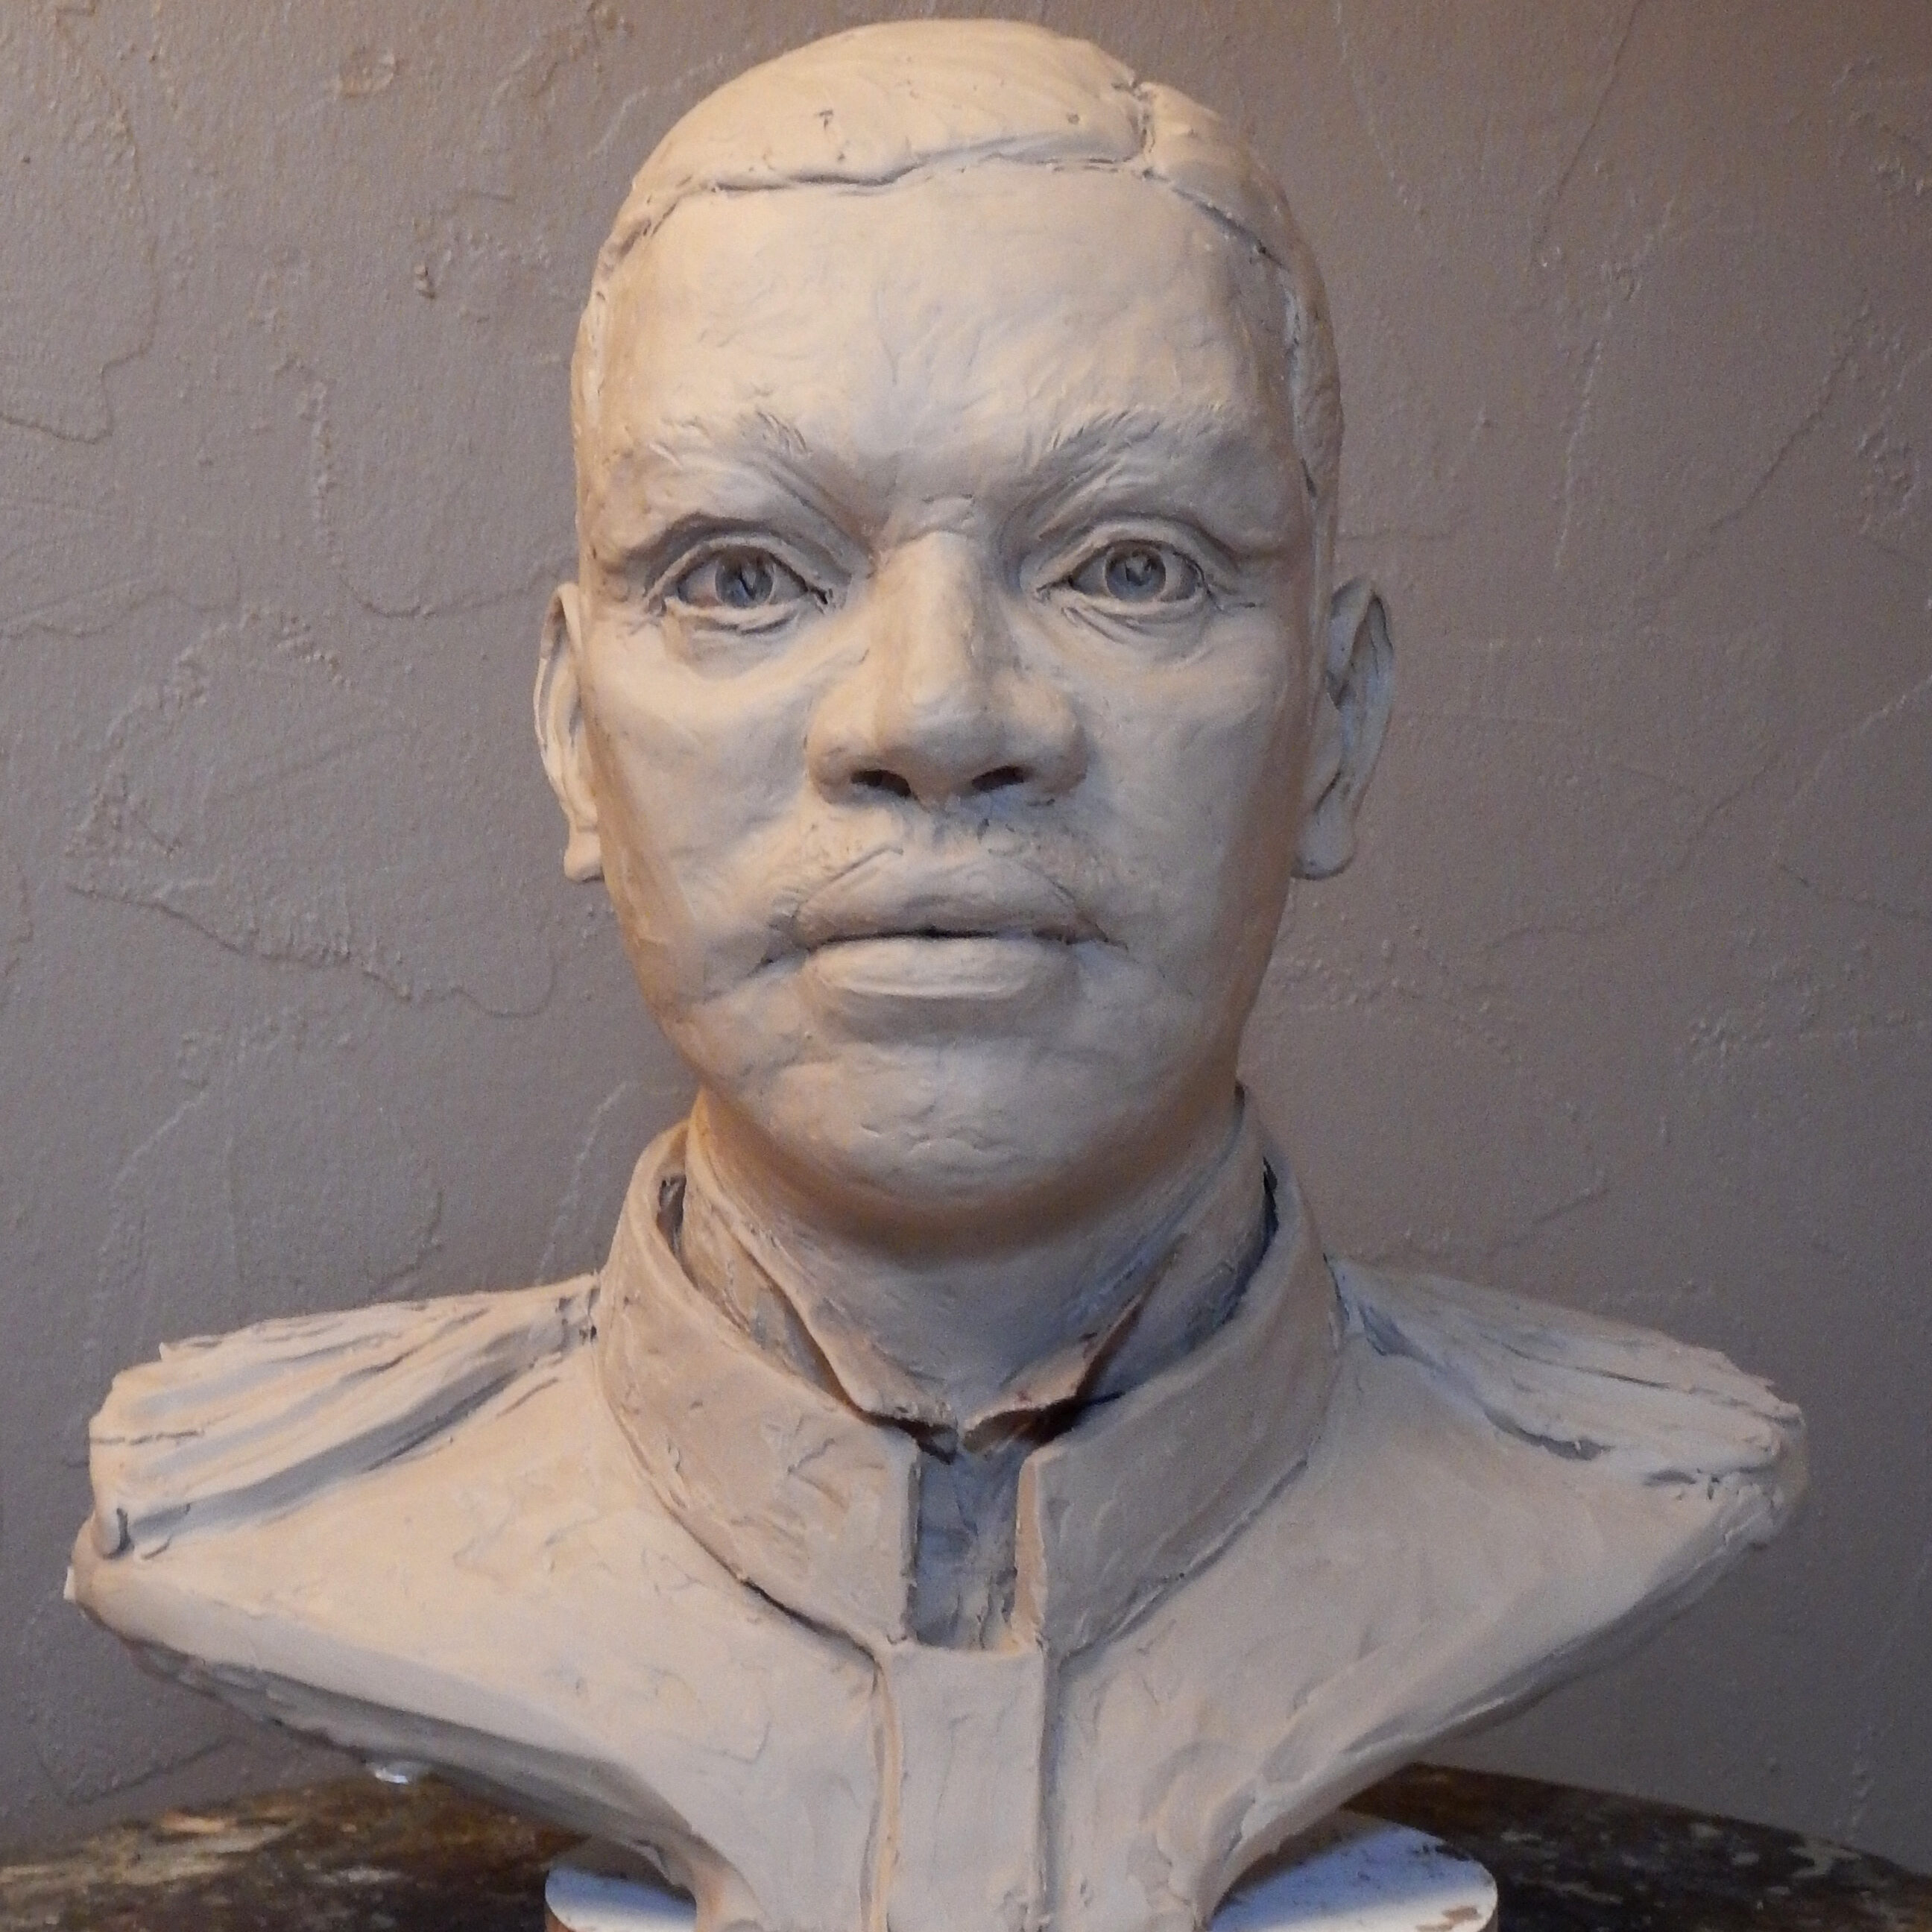 Ed Walker, sculptor